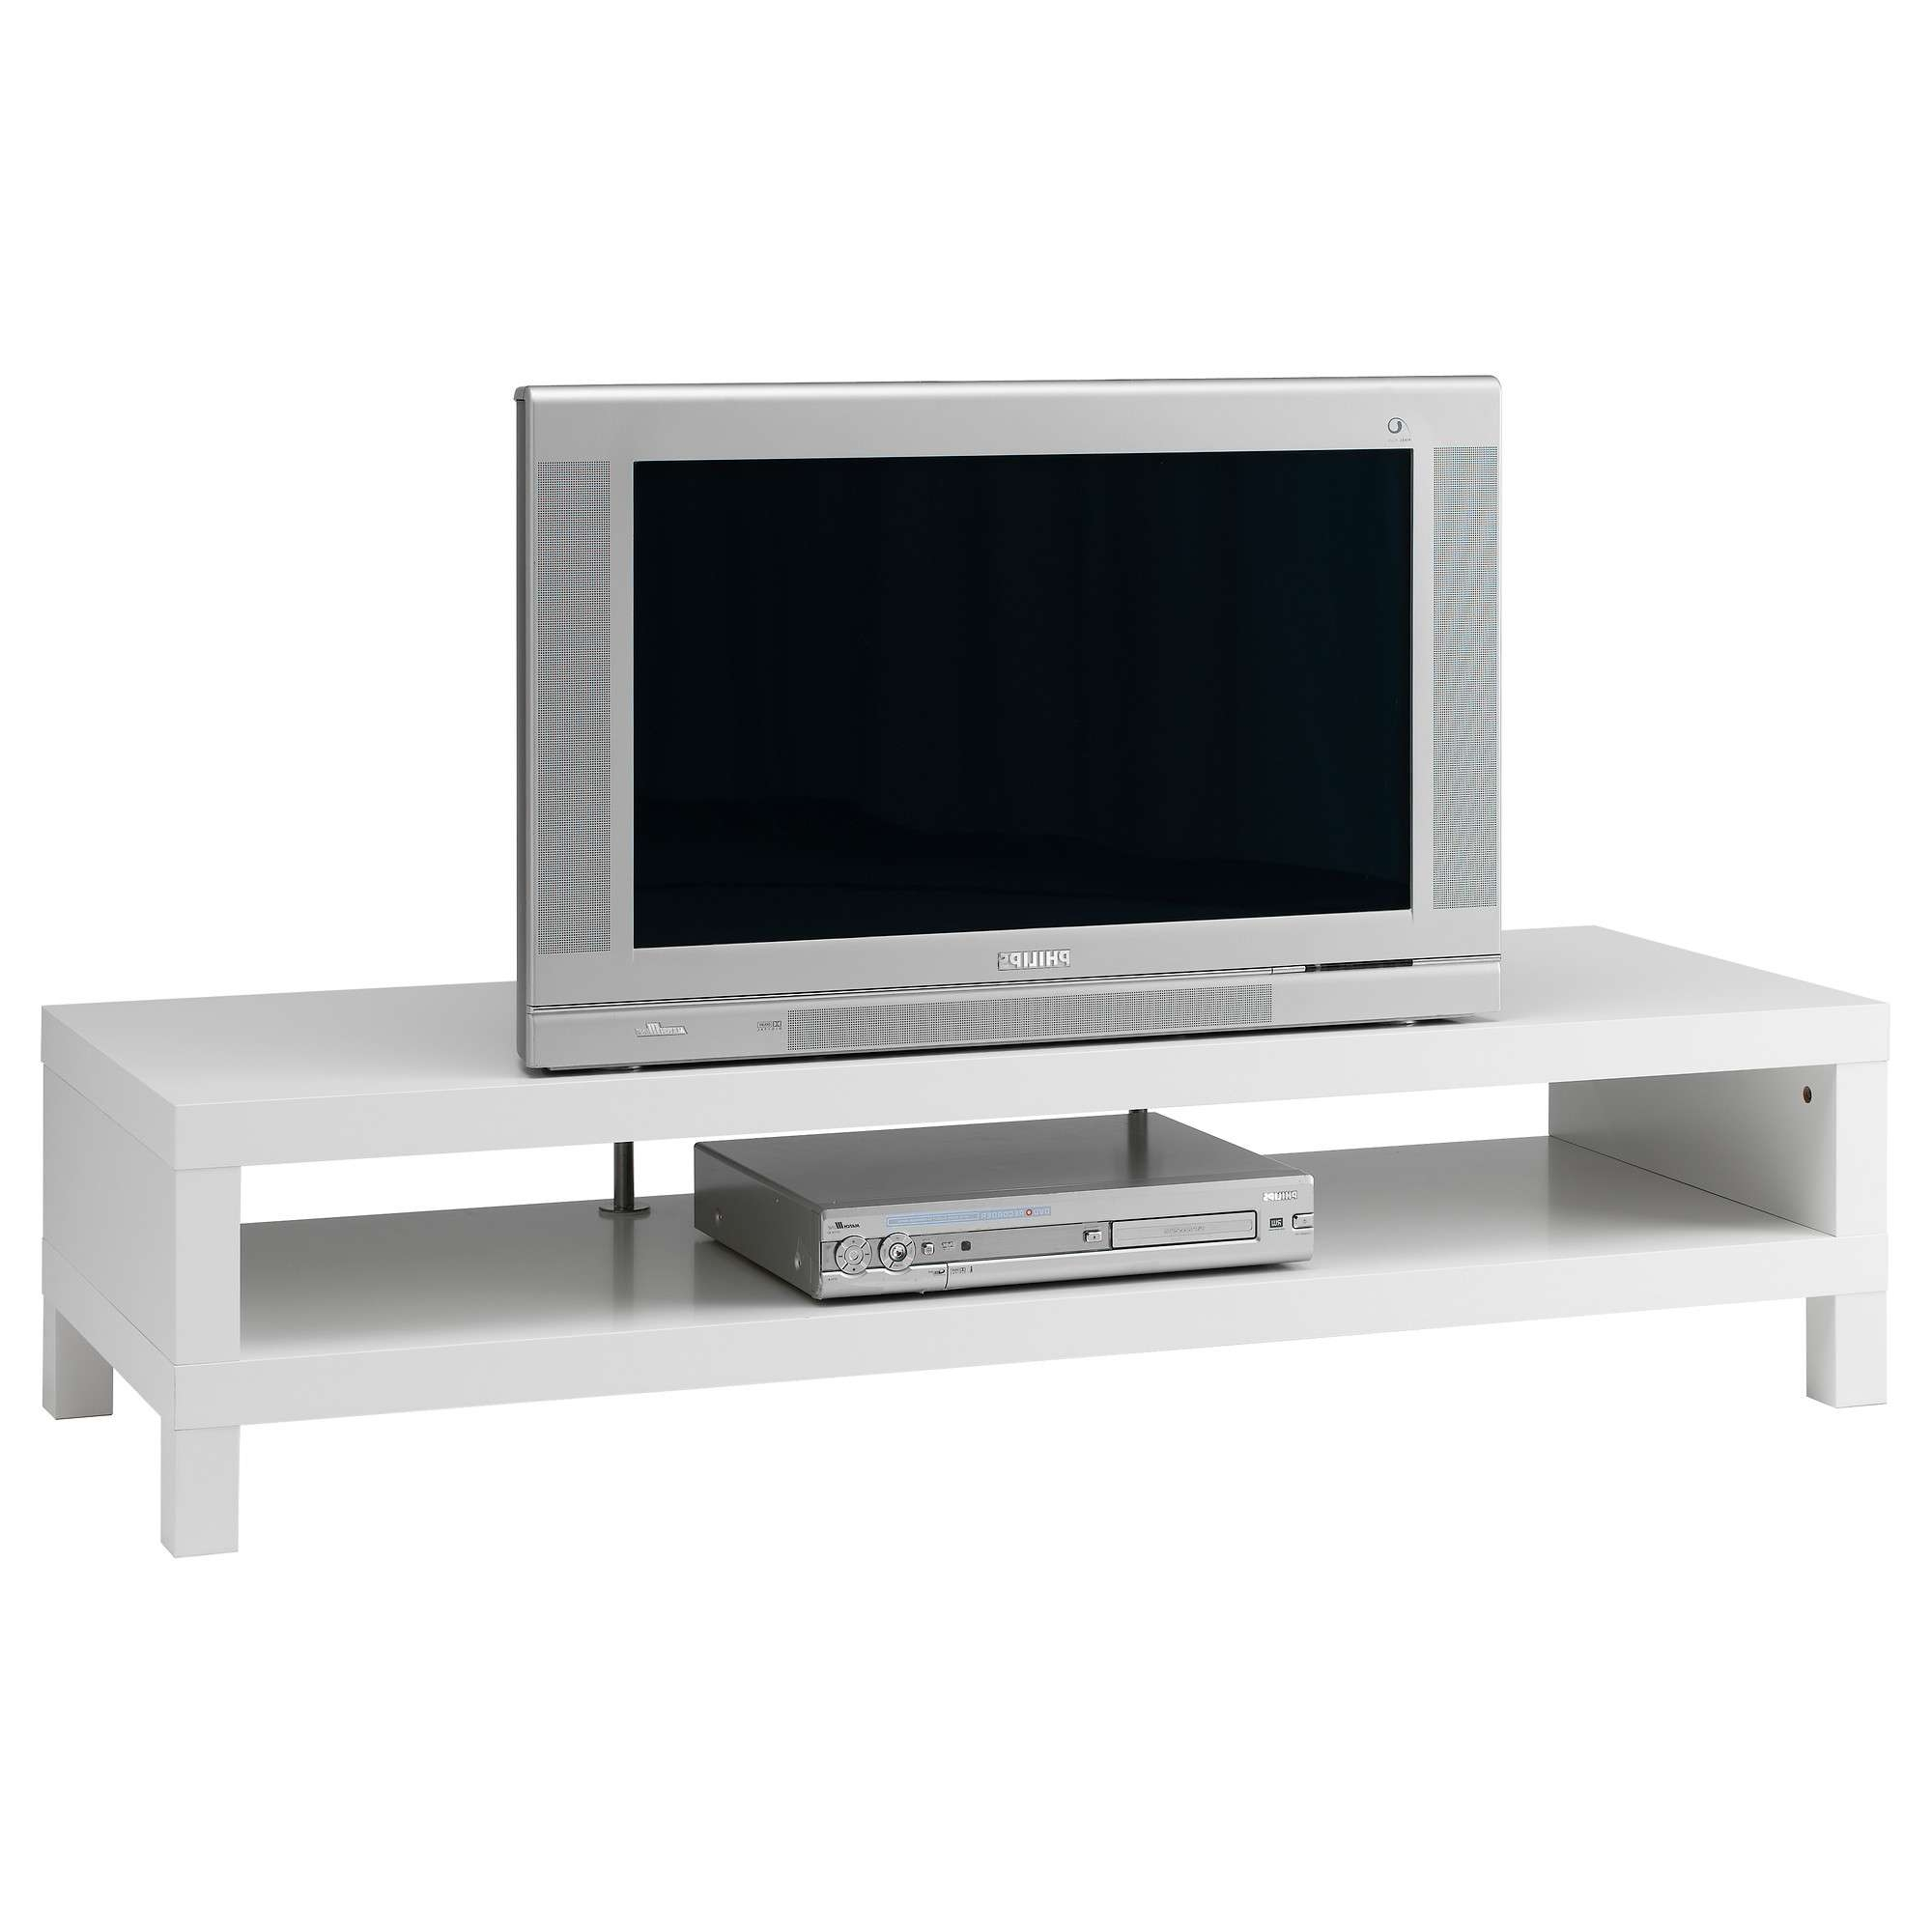 Tv Stands & Tv Units | Ikea Regarding Tv Stands At Ikea (View 14 of 15)